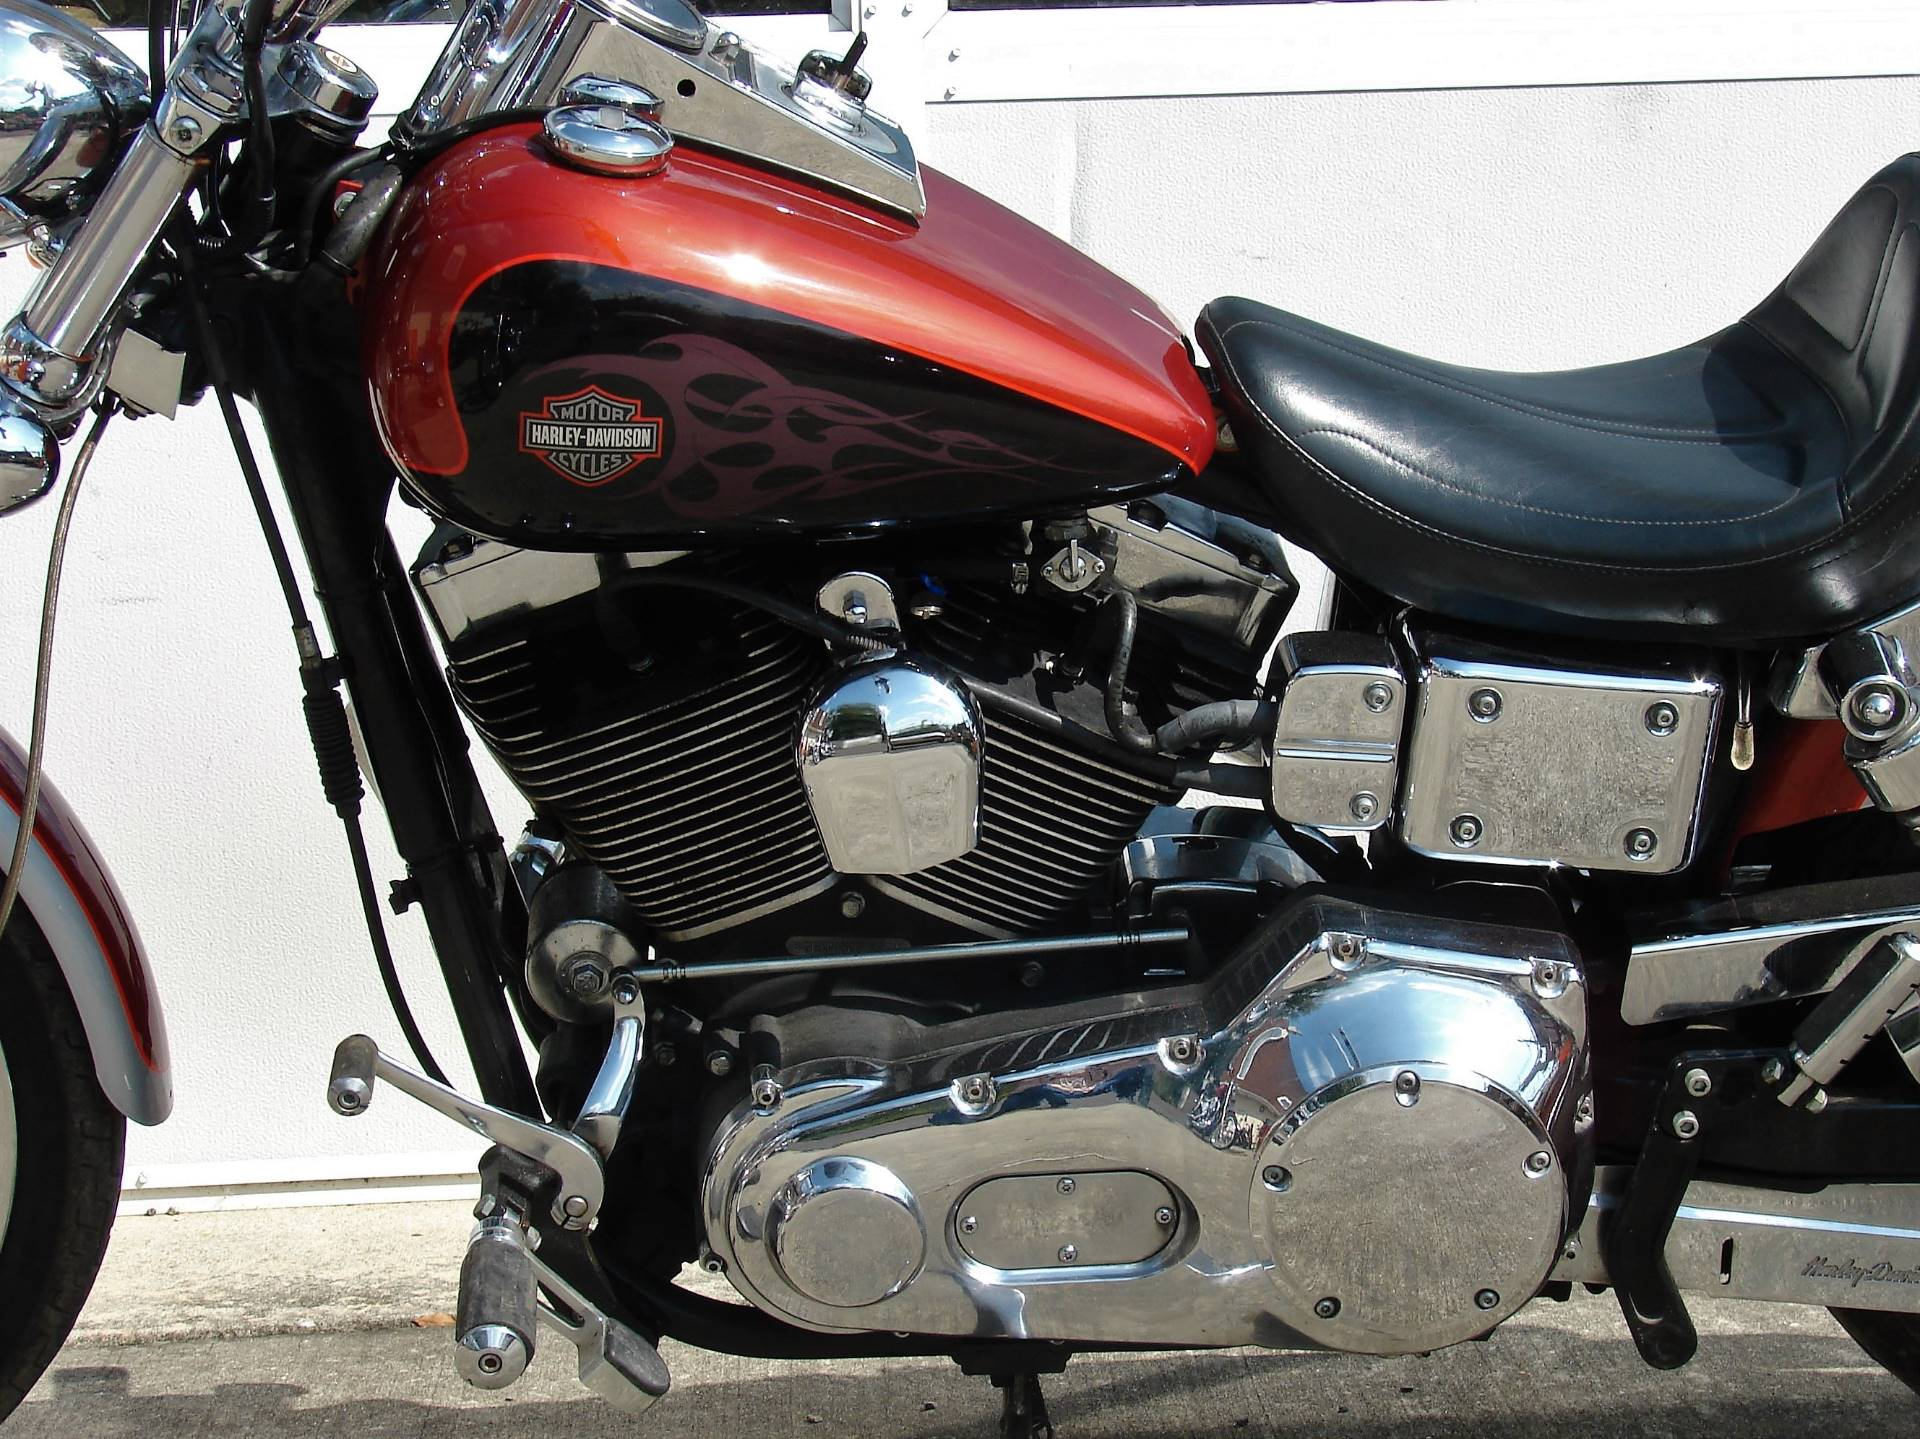 2000 Harley-Davidson FXDWG Dyna Wide Glide in Williamstown, New Jersey - Photo 8